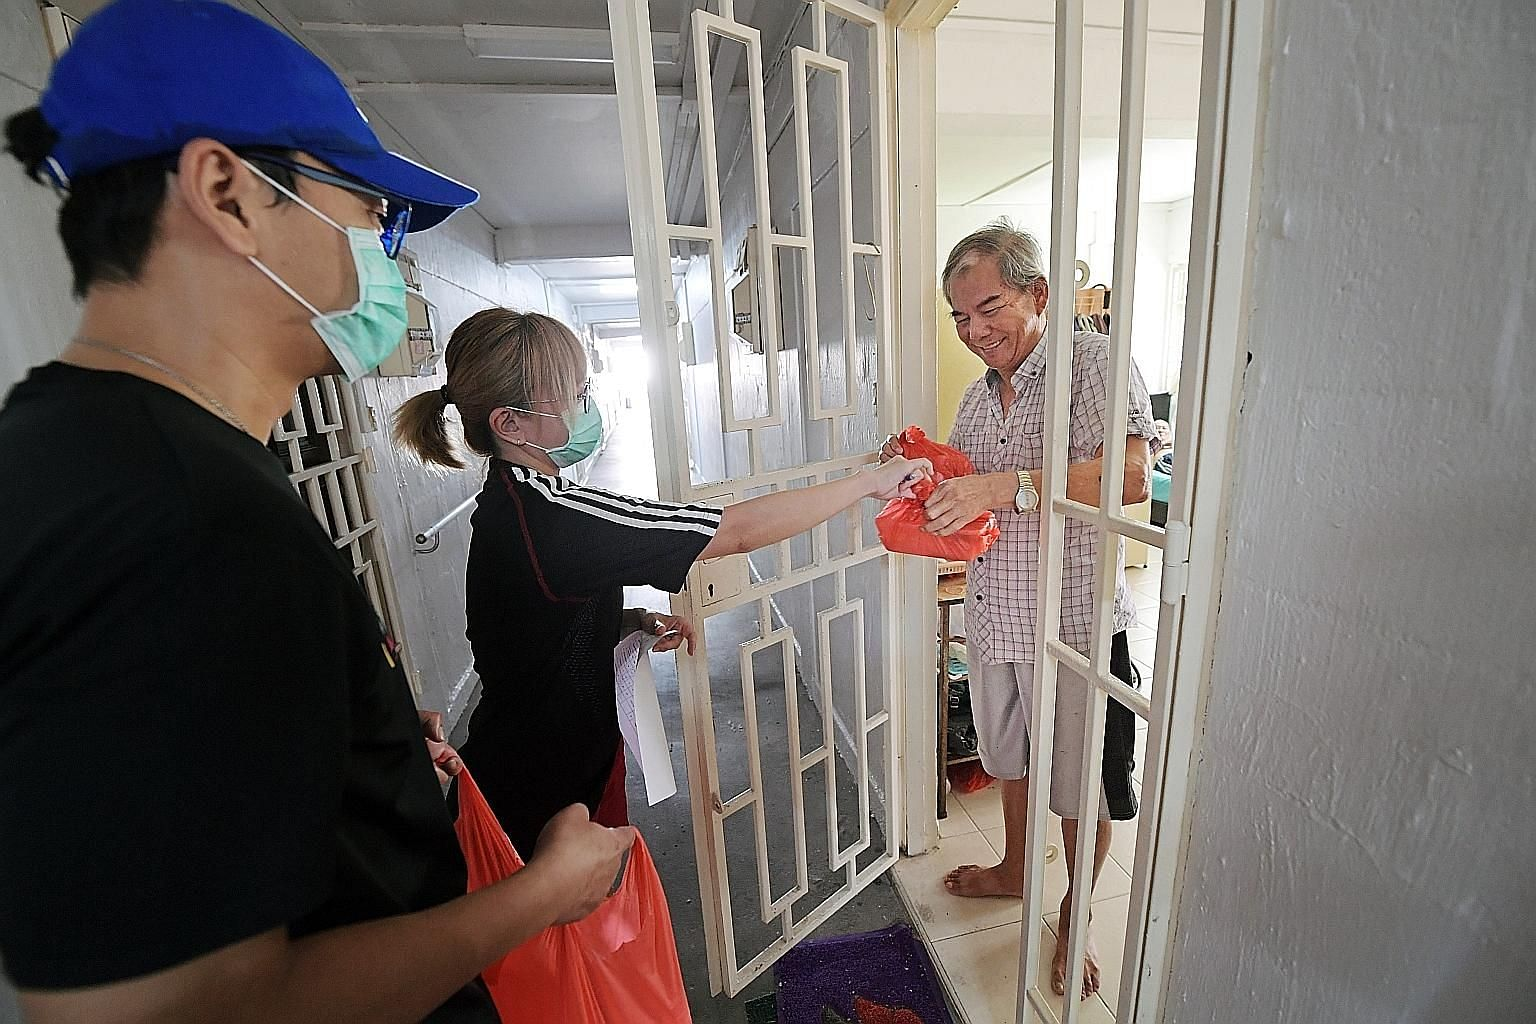 Volunteers Joel Tan, 44, and Gracia Yap, 45, delivering food to Mr Lim Chin Kiat, an elderly resident in Ang Mo Kio earlier this month. The Health Ministry noted that the prolonged suspension of services may cause seniors with little or no social sup